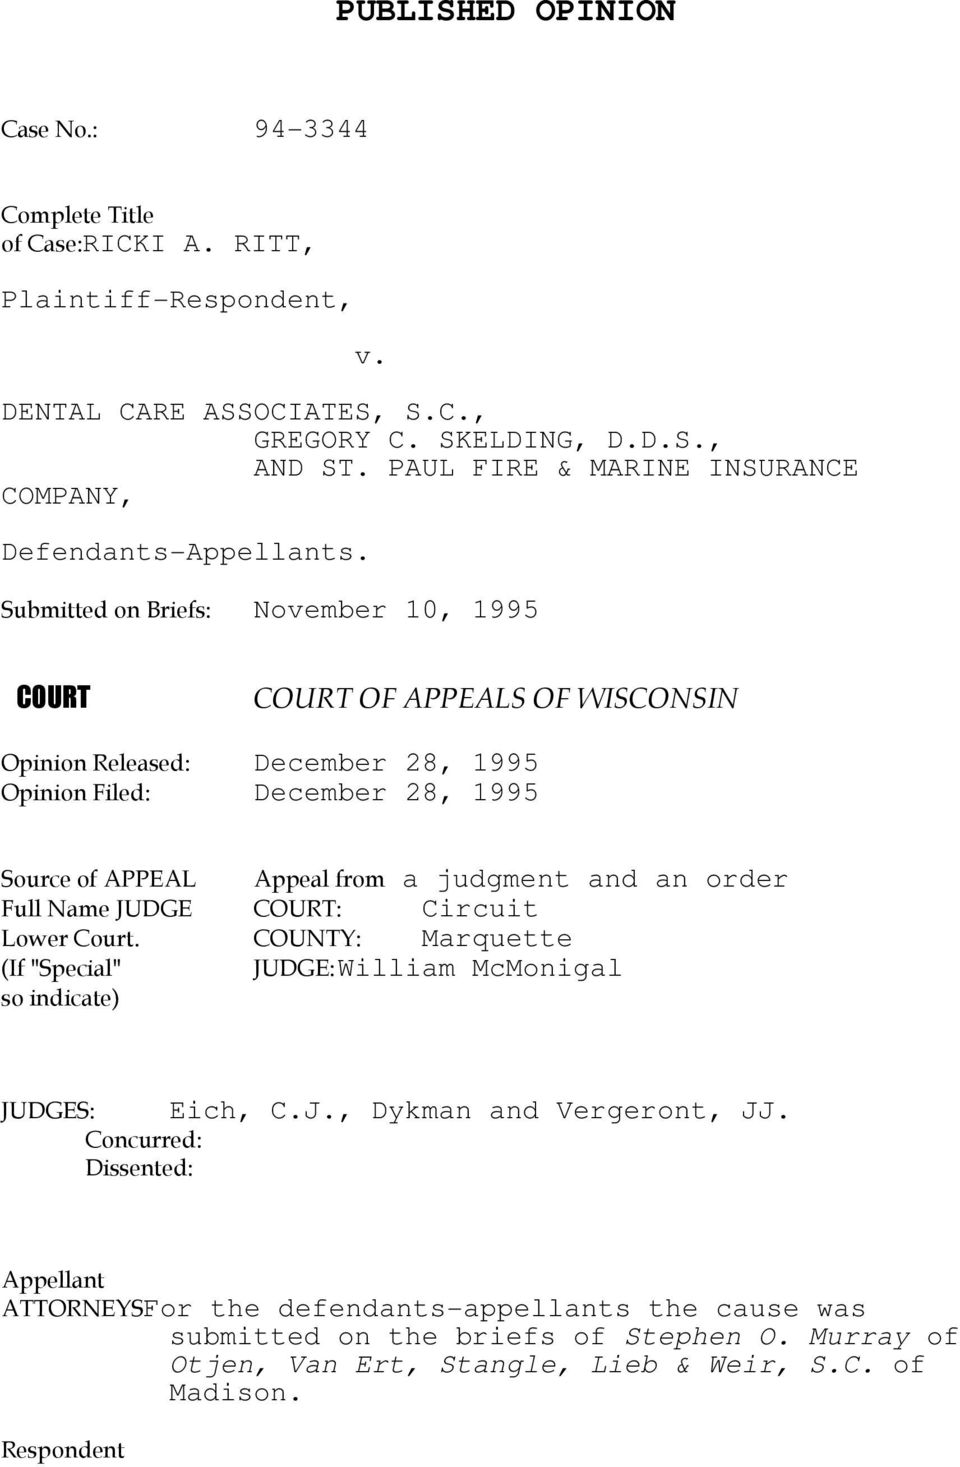 Submitted on Briefs: November 10, 1995 COURT COURT OF APPEALS OF WISCONSIN Opinion Released: December 28, 1995 Opinion Filed: December 28, 1995 Source of APPEAL Full Name JUDGE COURT: Circuit